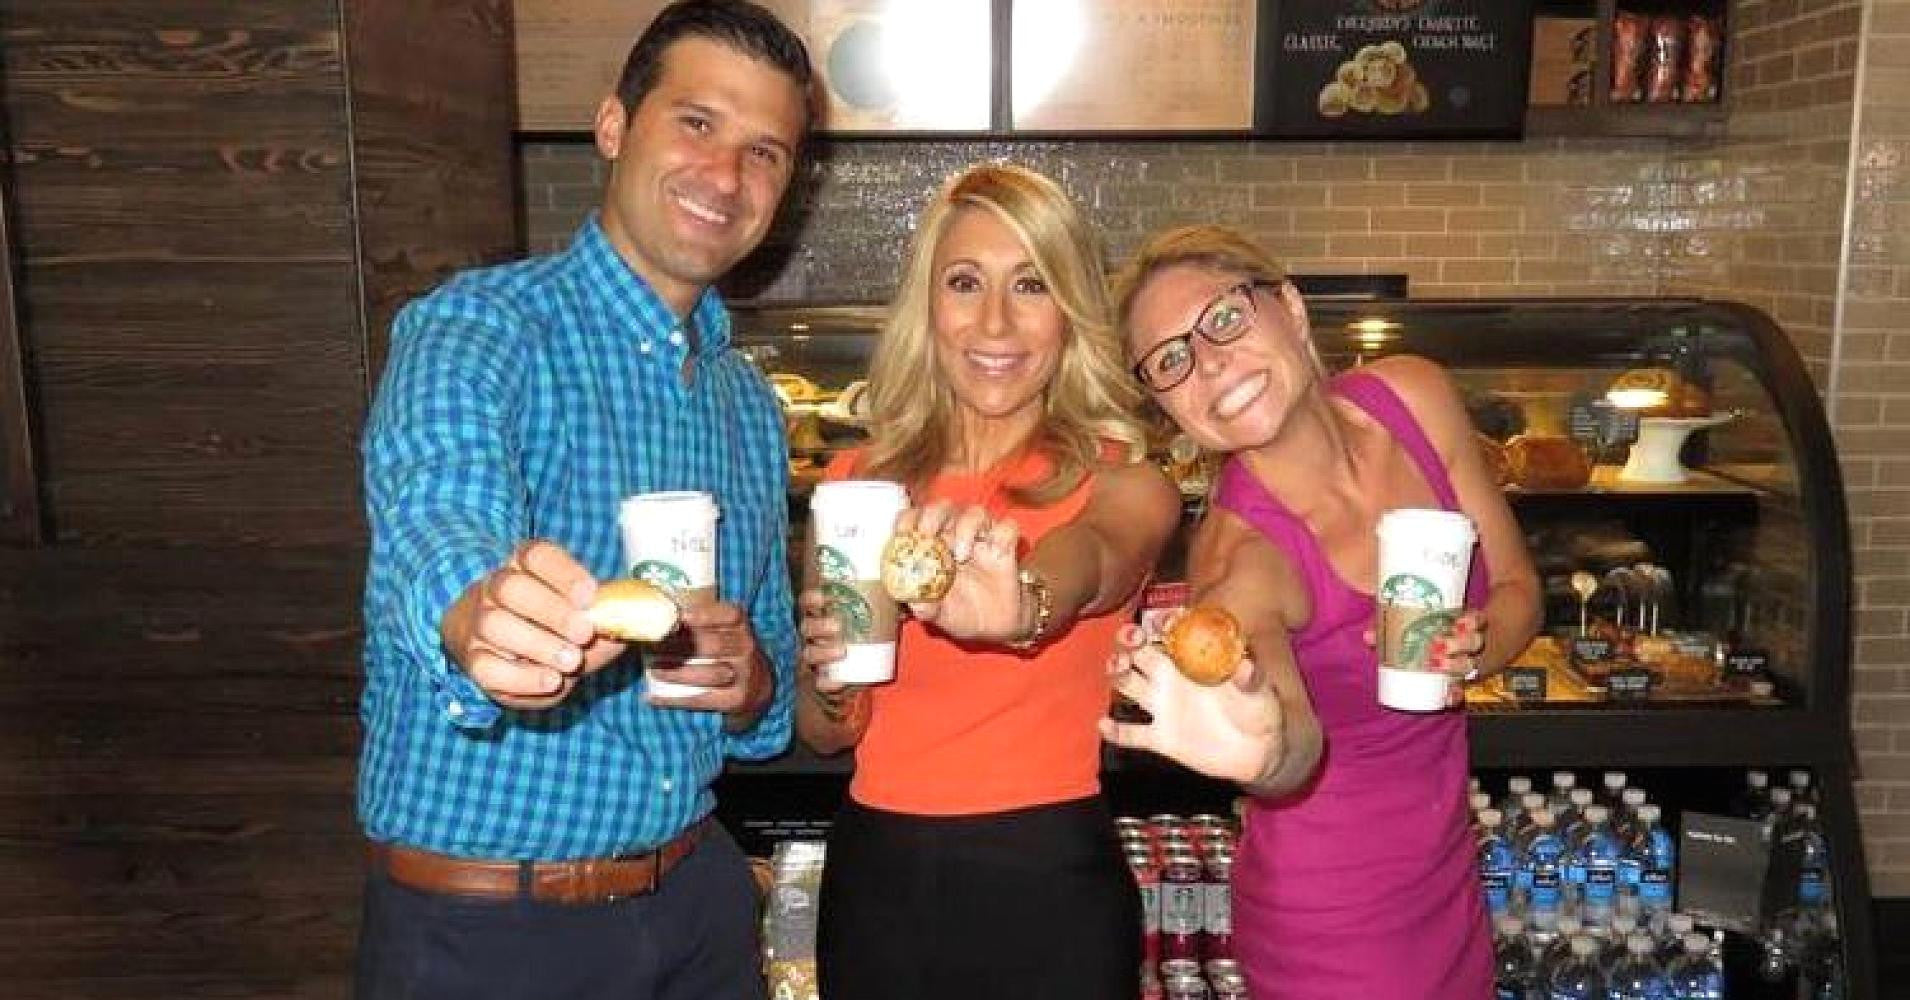 CNBC: How 'Shark Tank' helped this bagel company hit $2 million and get a deal with Starbucks